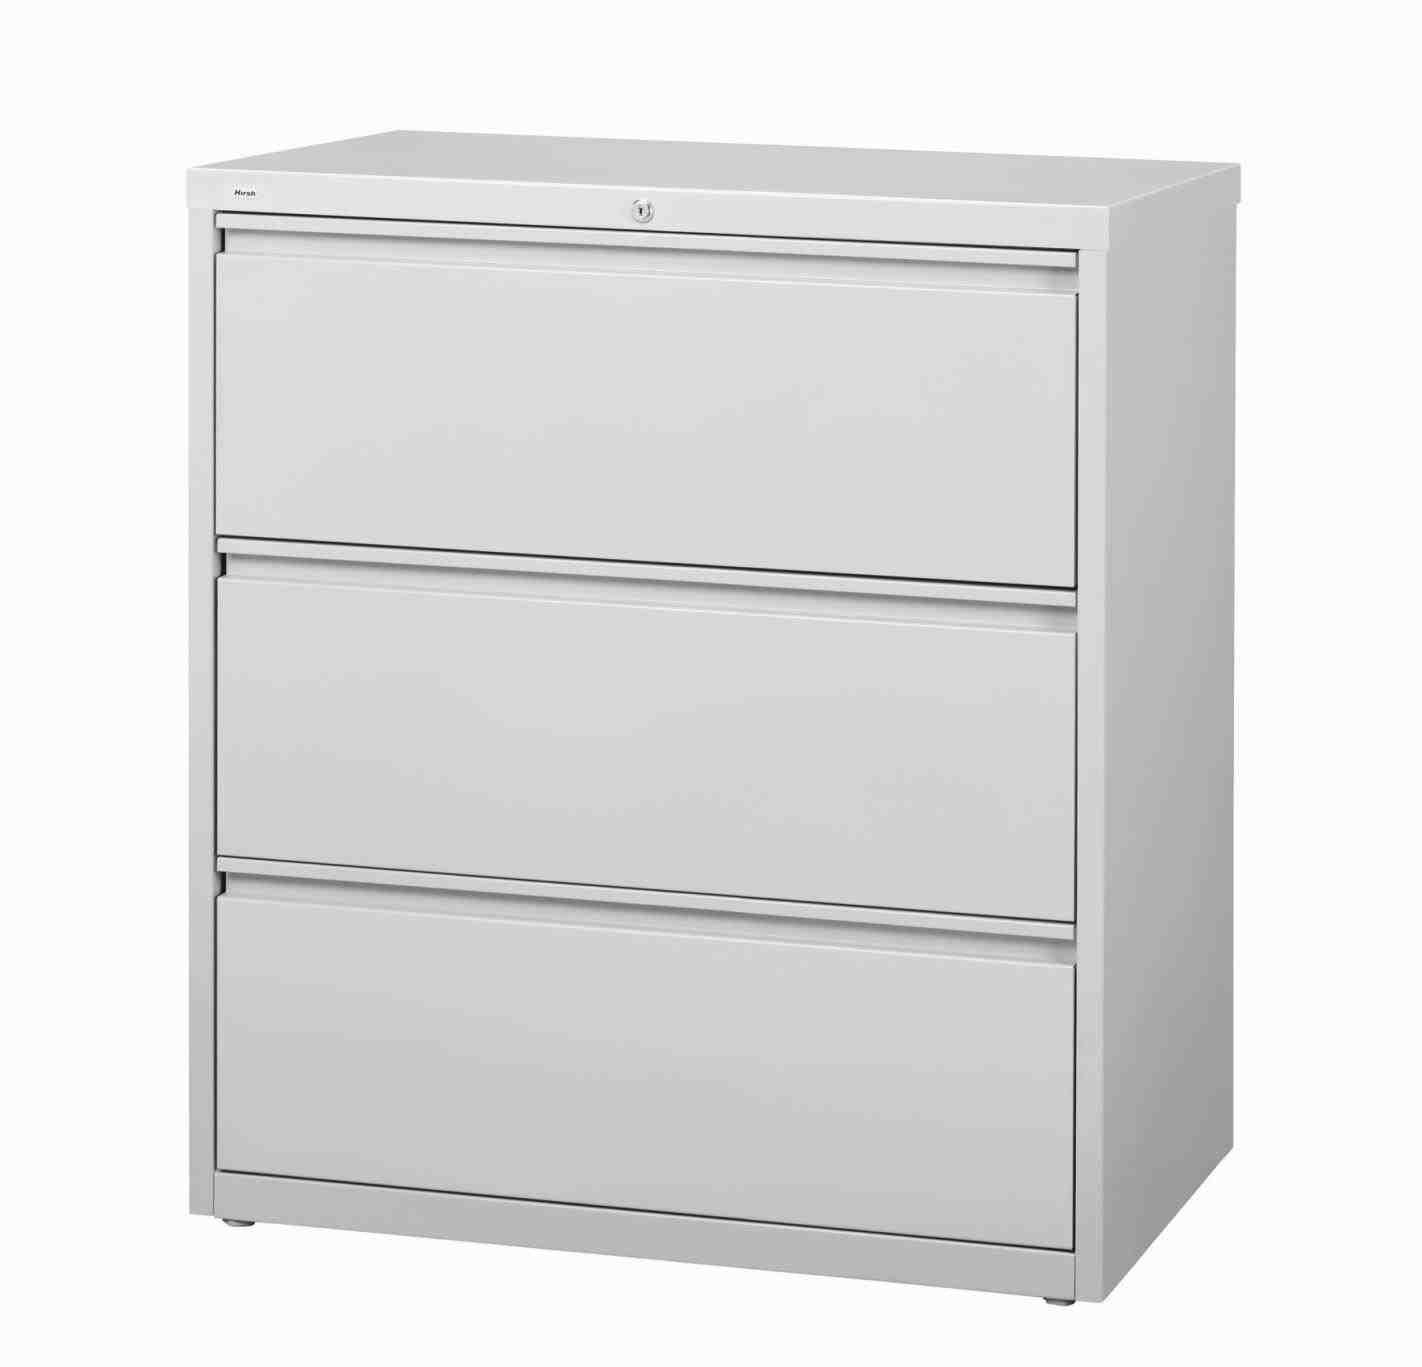 New Post 3 drawer lateral file cabinet dimensions